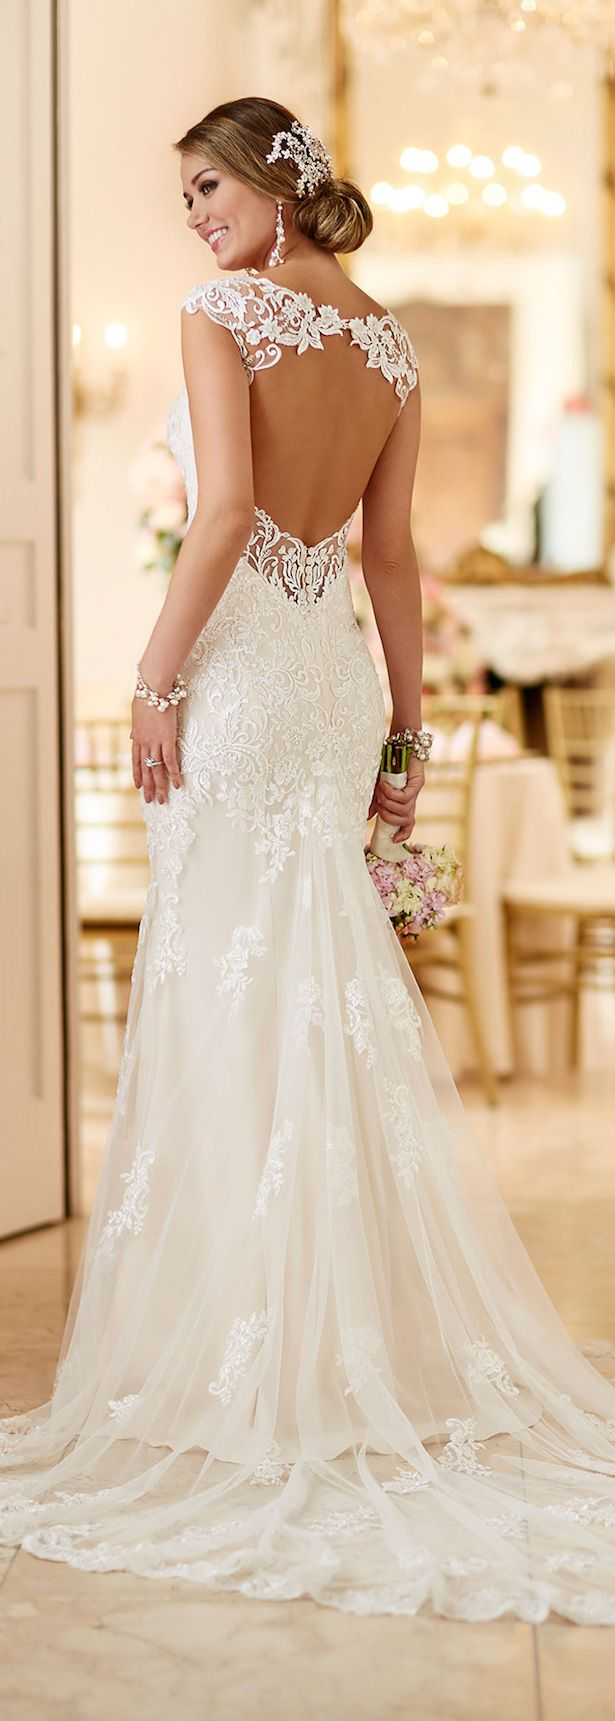 beach wedding dresses toronto beach casual wedding dress Beach Wedding Dresses Toronto